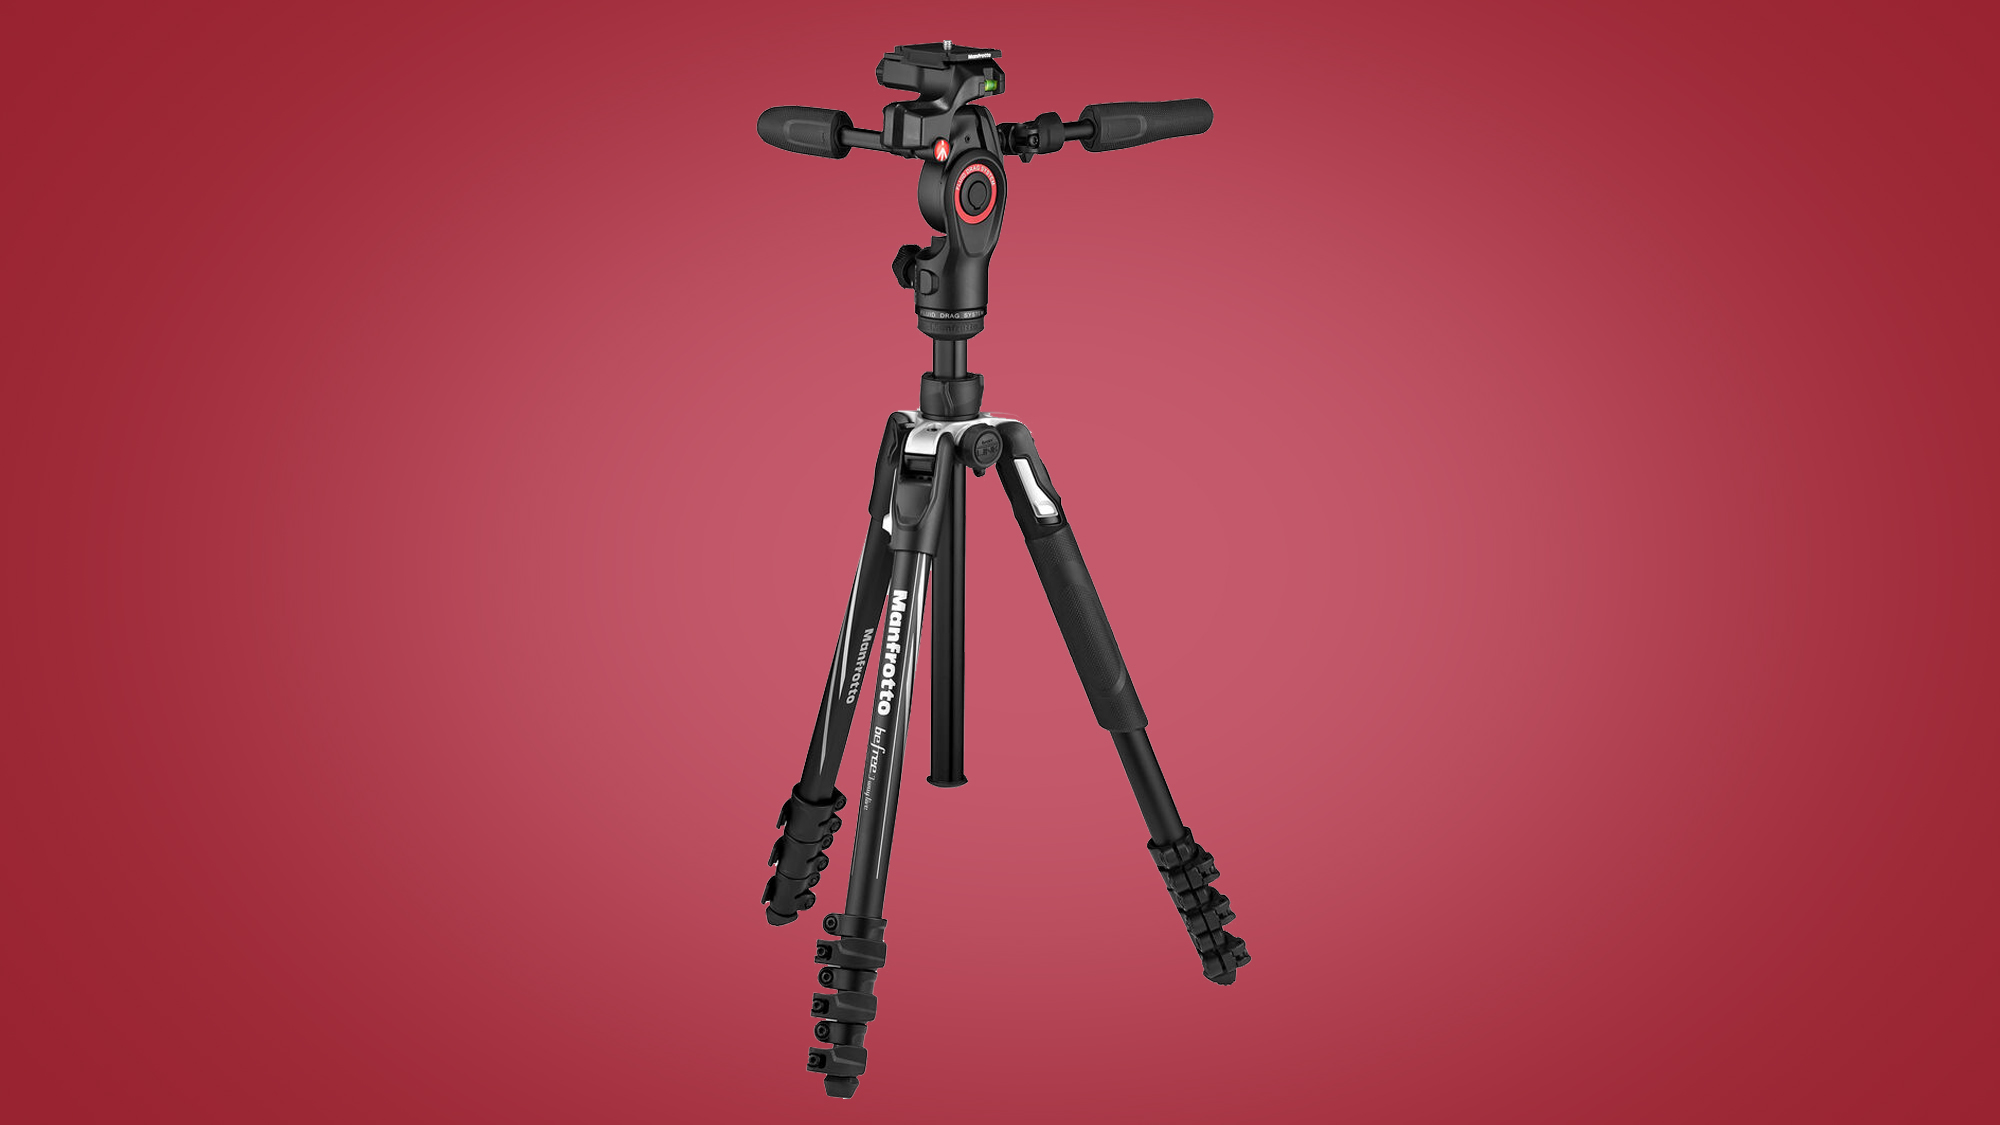 The Manfrotto Befree 3-Way Live Advanced on a red background